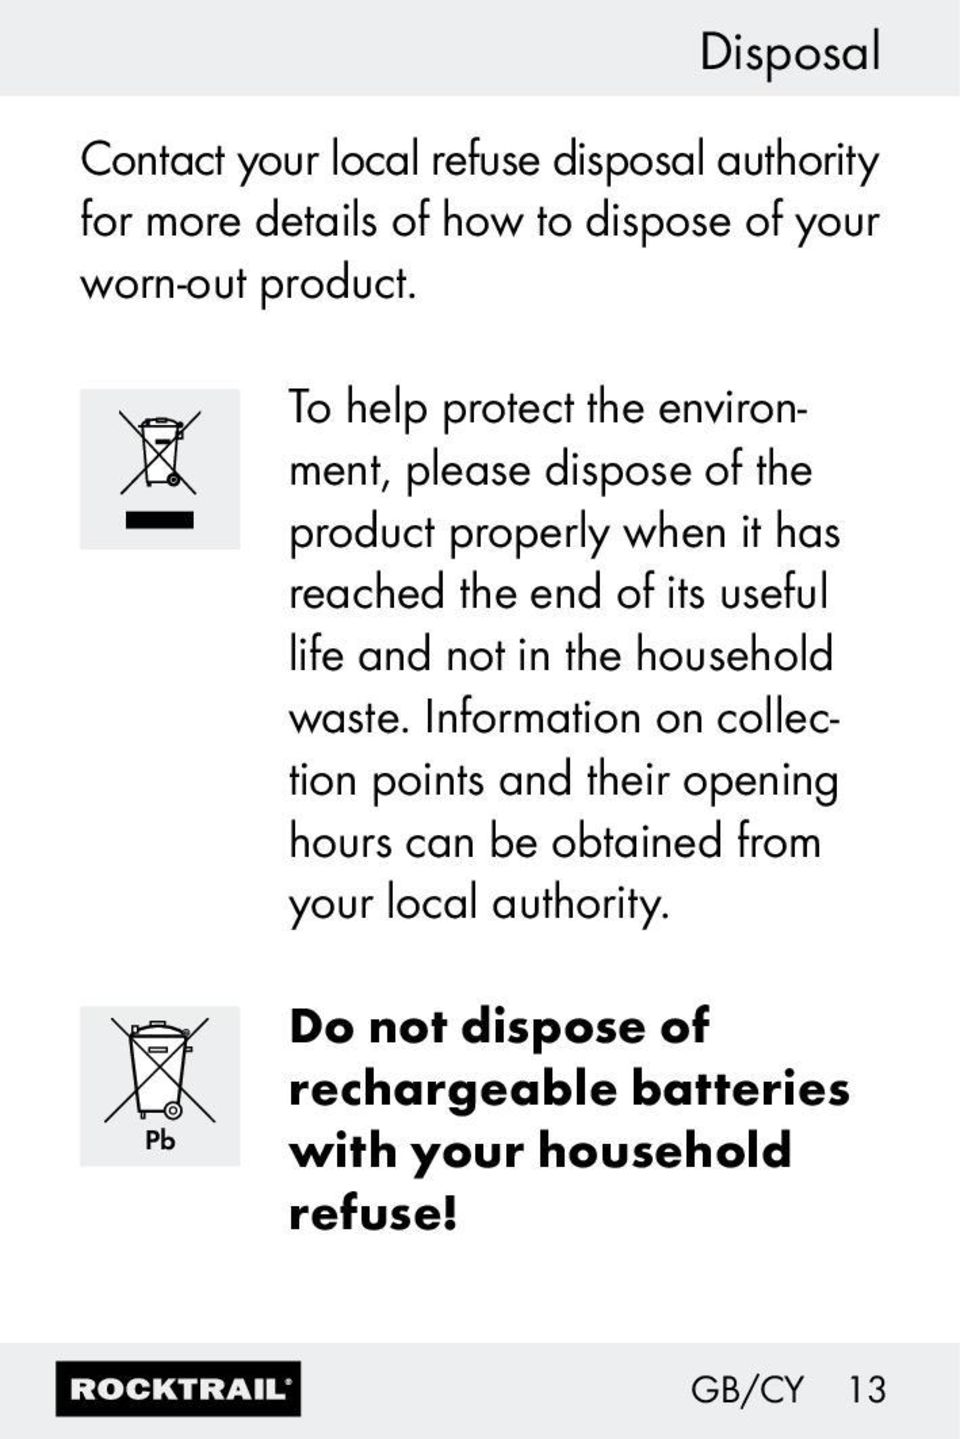 To help protect the environment, please dispose of the product properly when it has reached the end of its